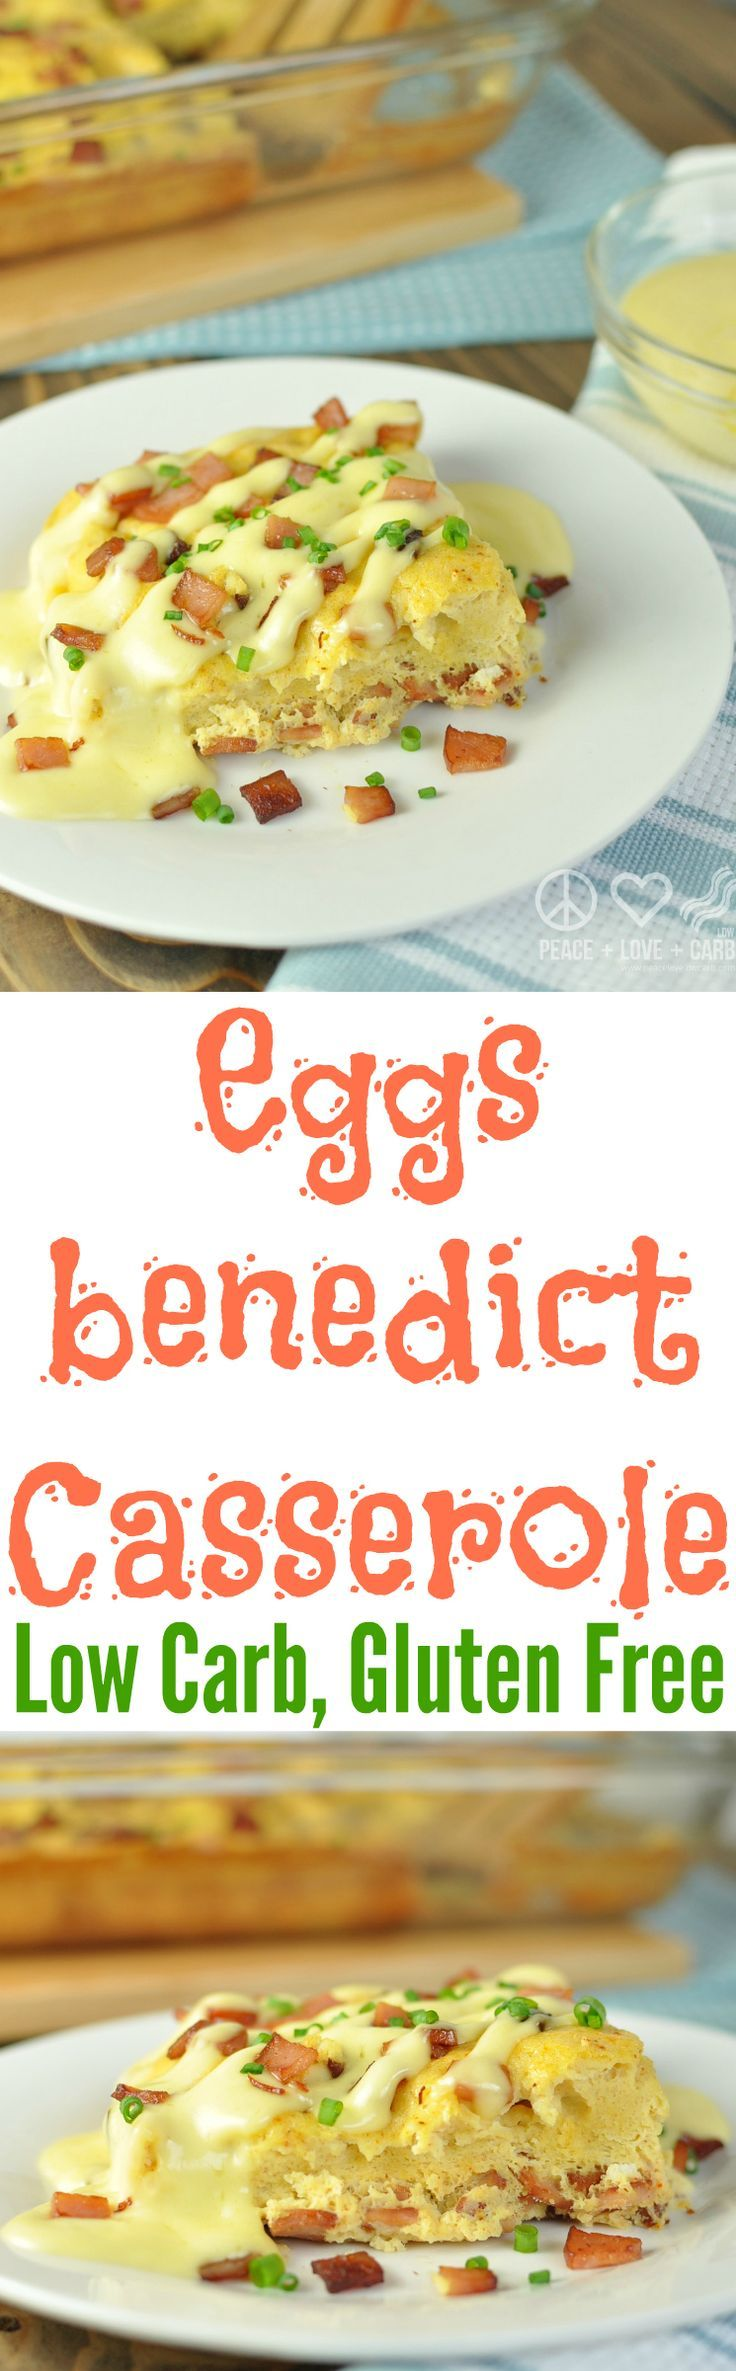 Eggs Benedict Breakfast Casserole - Low Carb, Gluten Free | Peace Love and Low Carb